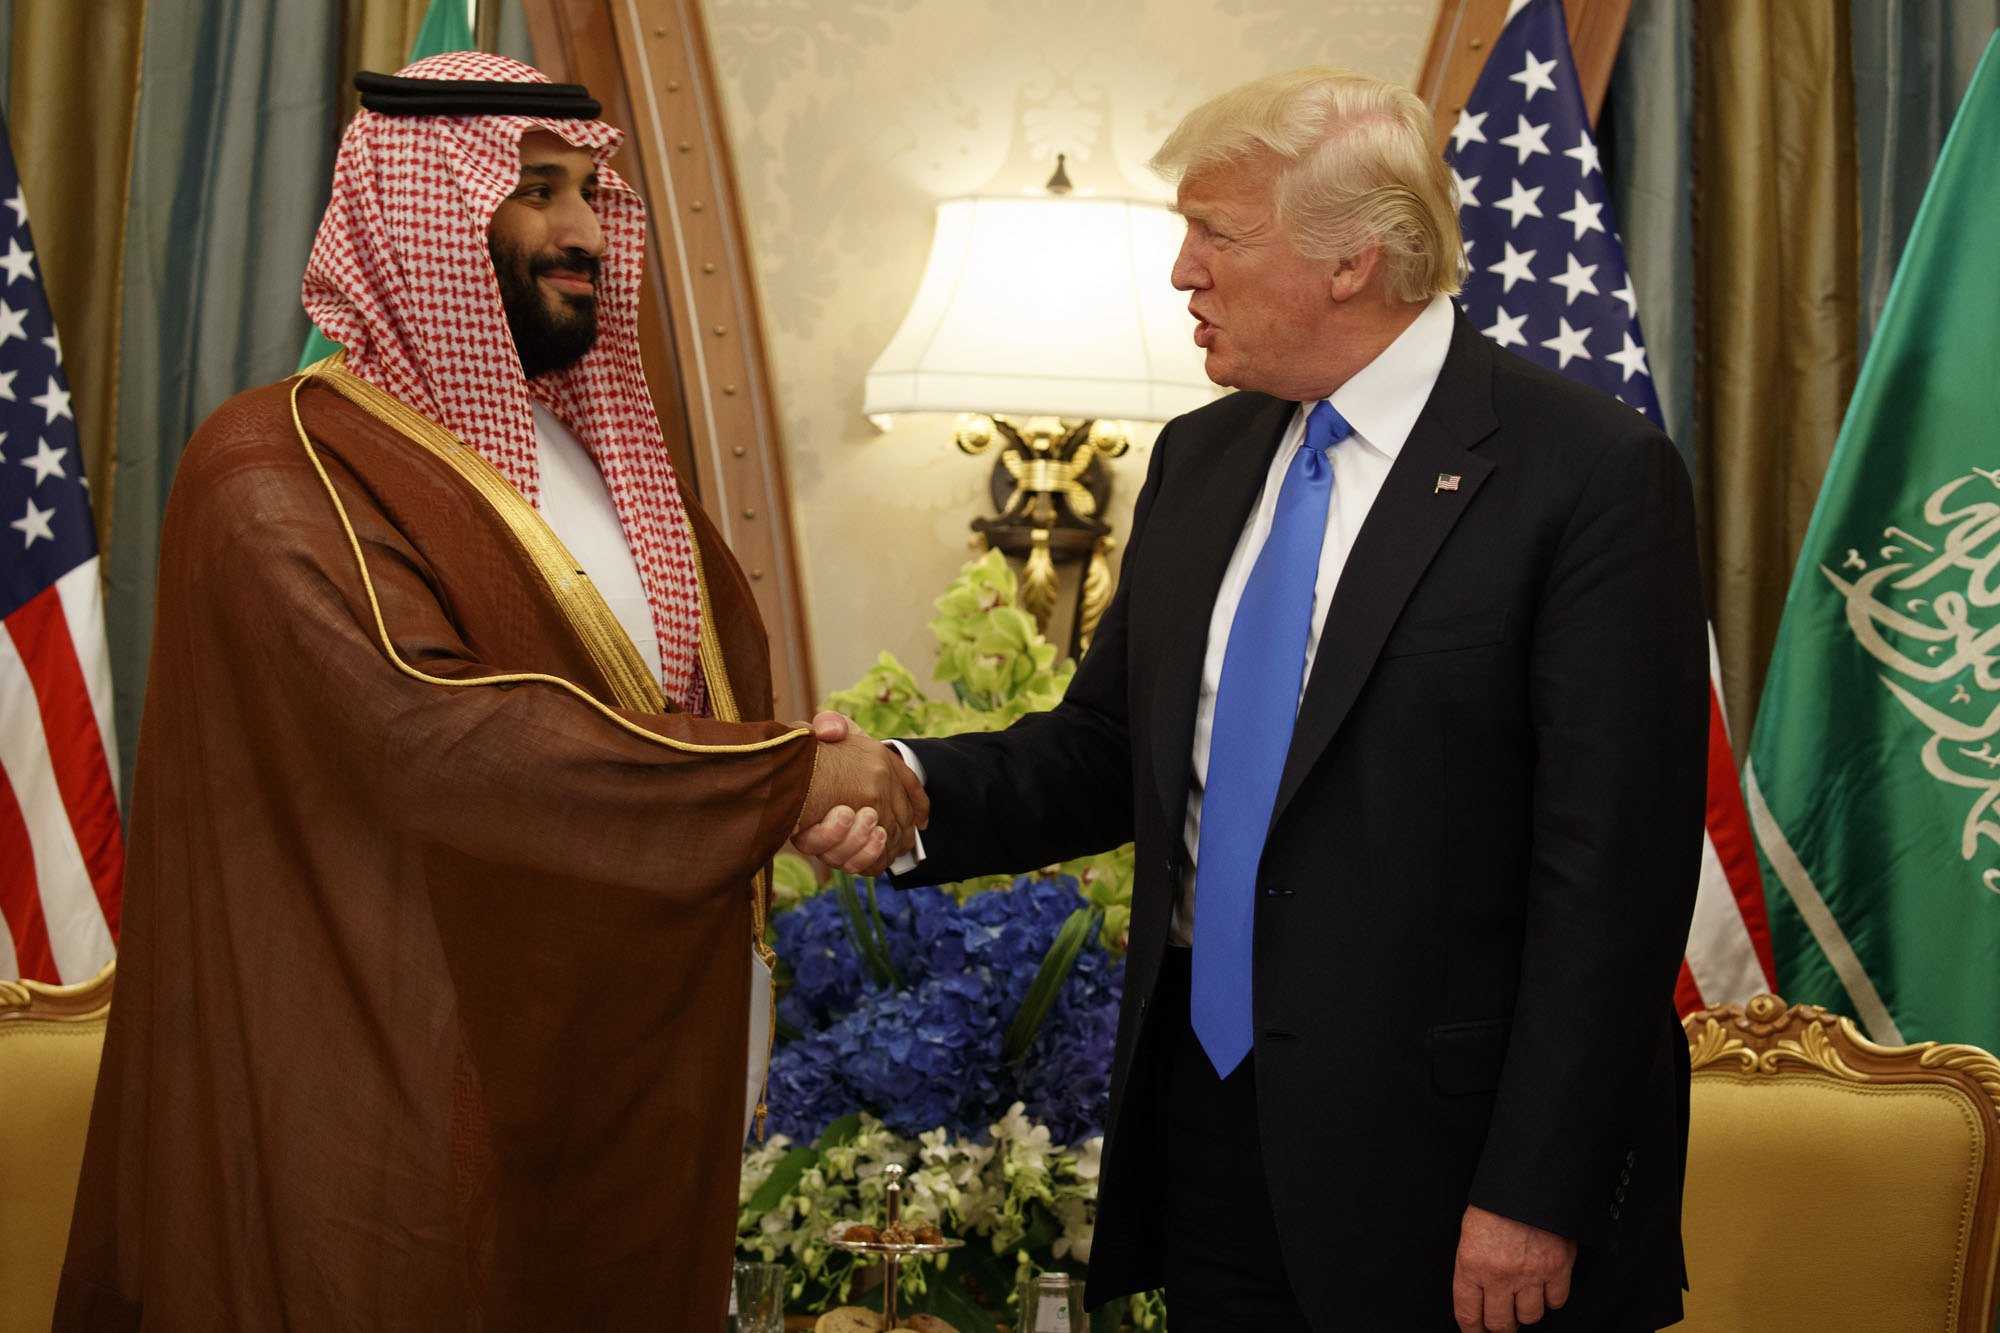 Saudi Defense Minister and then-Deputy Crown Prince Mohammed bin Salman shakes hands with U.S. President Donald Trump during a bilateral meeting in Riyadh on May 20.  Salman, who was named crown prince on June 21, has been responsible for a more aggressive Saudi stance in regional affairs.   AP